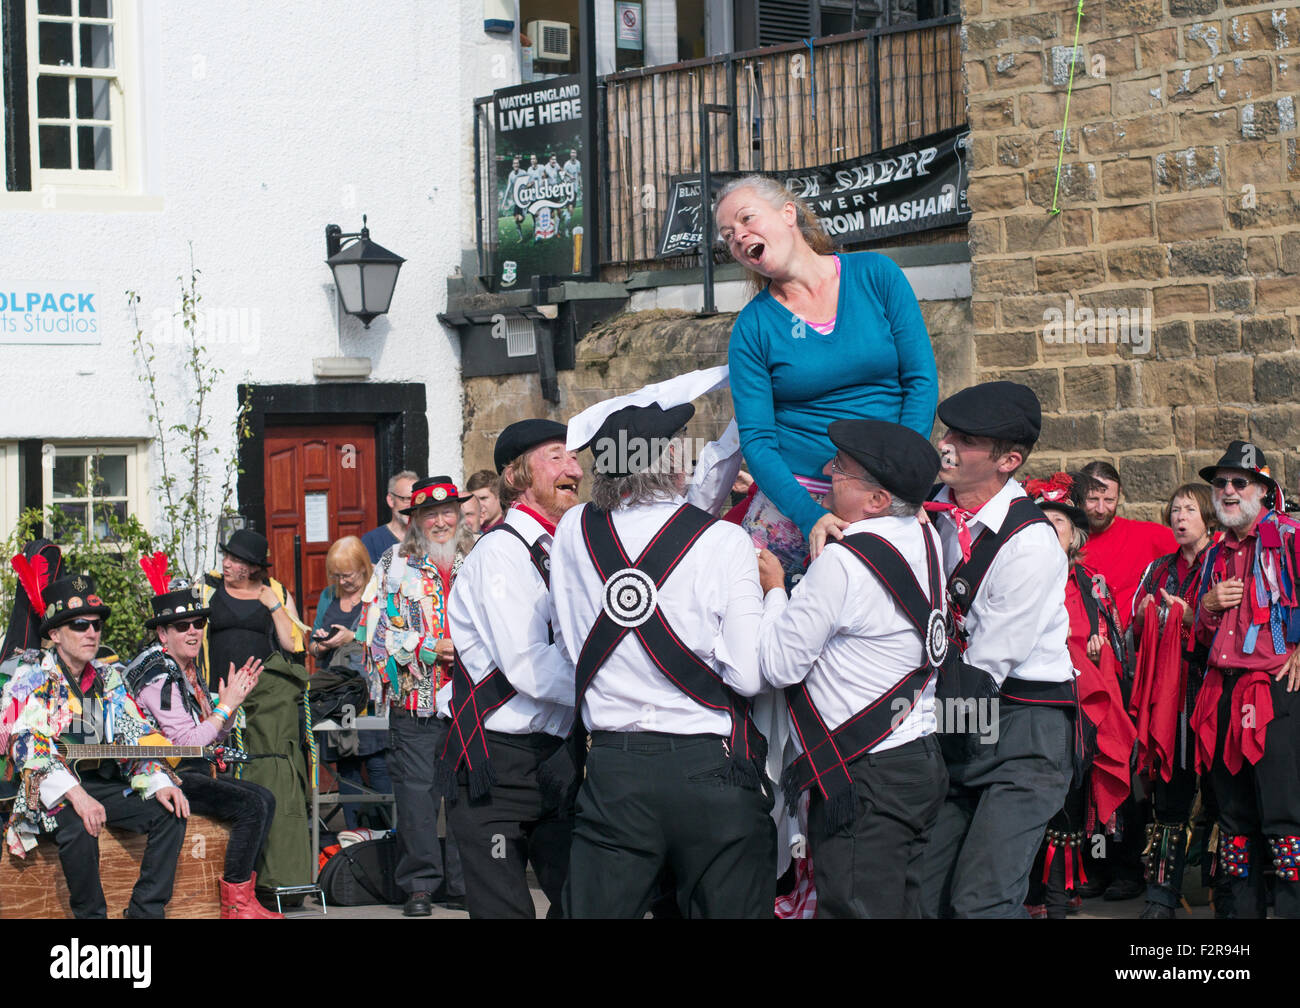 morris-dancing-group-great-yorkshire-mor